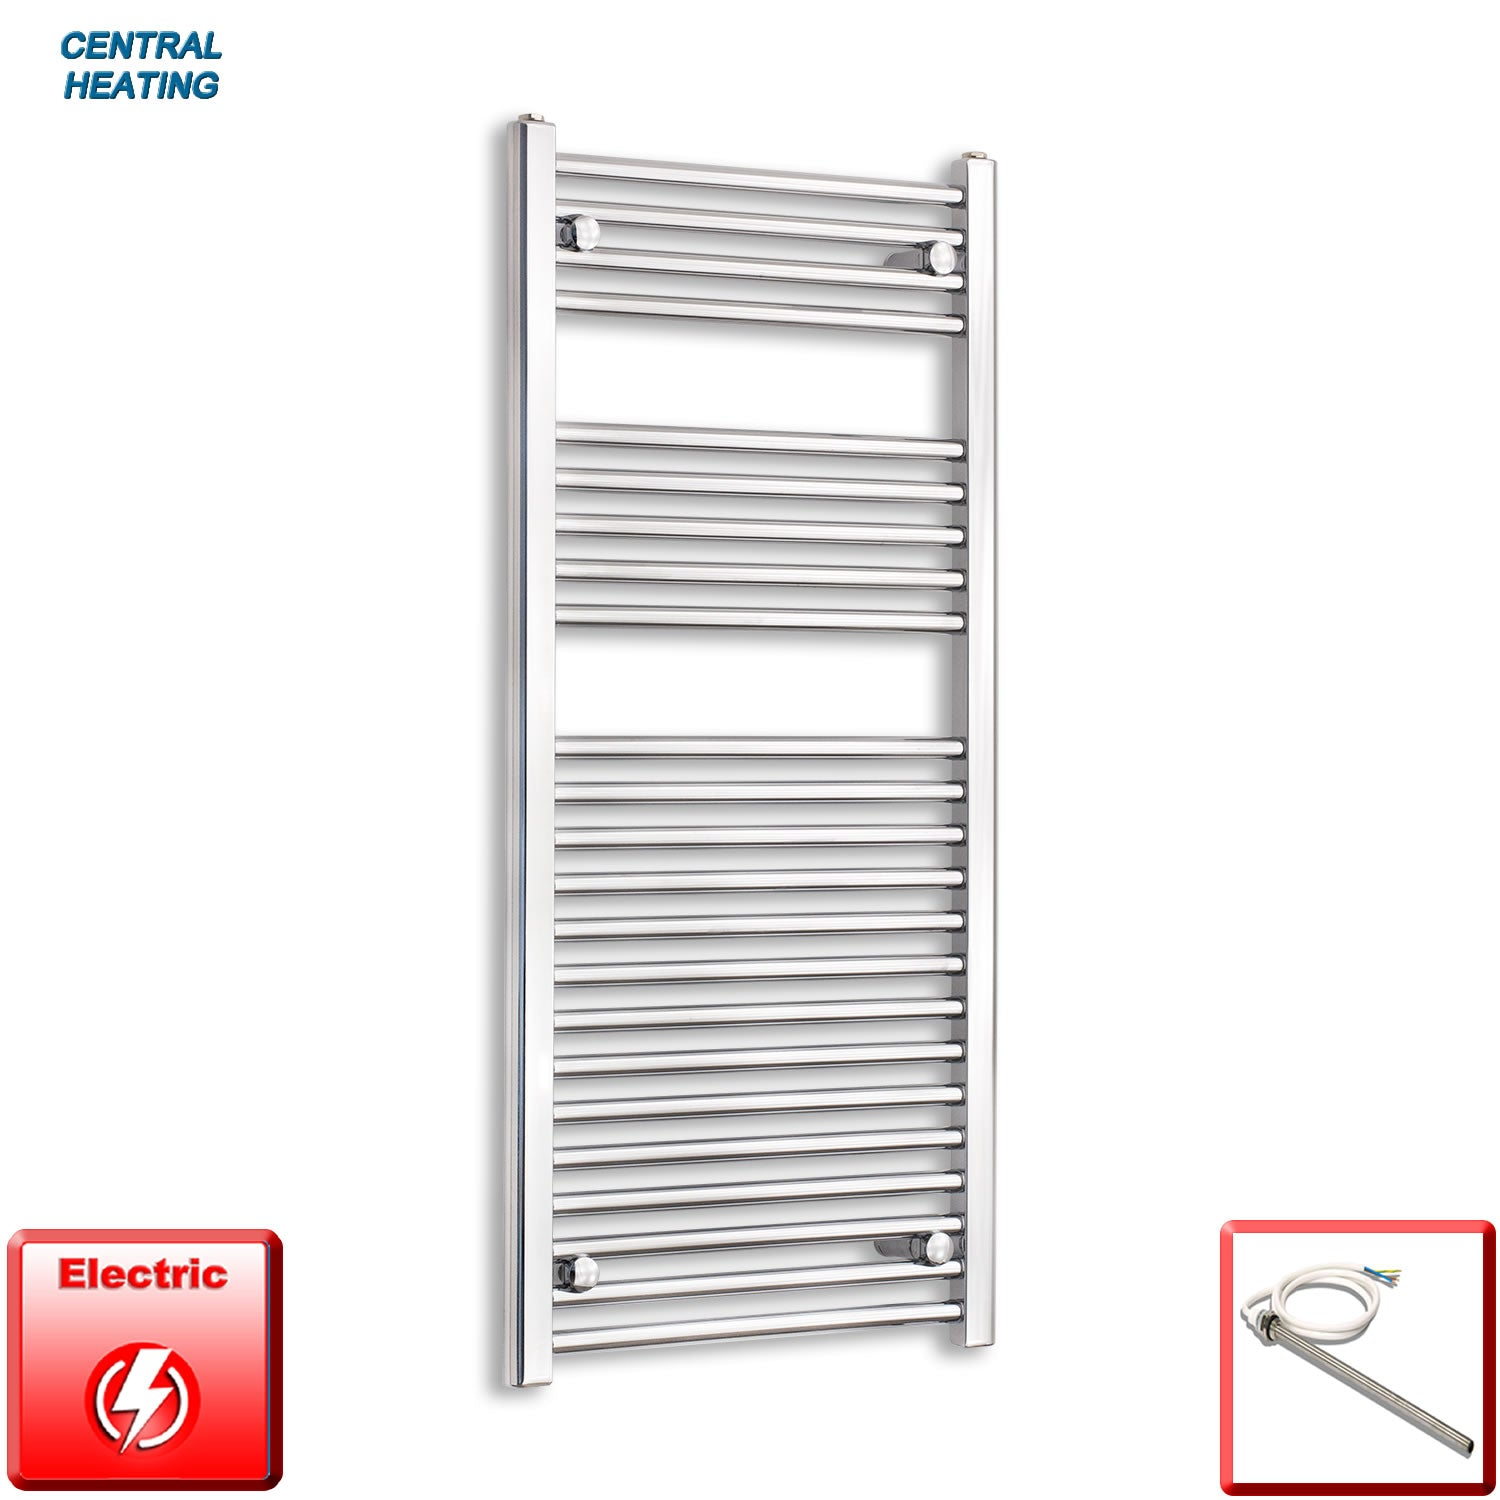 500mm Wide 1100mm High Pre-Filled Black Electric Towel Rail Radiator With Single Heat Element